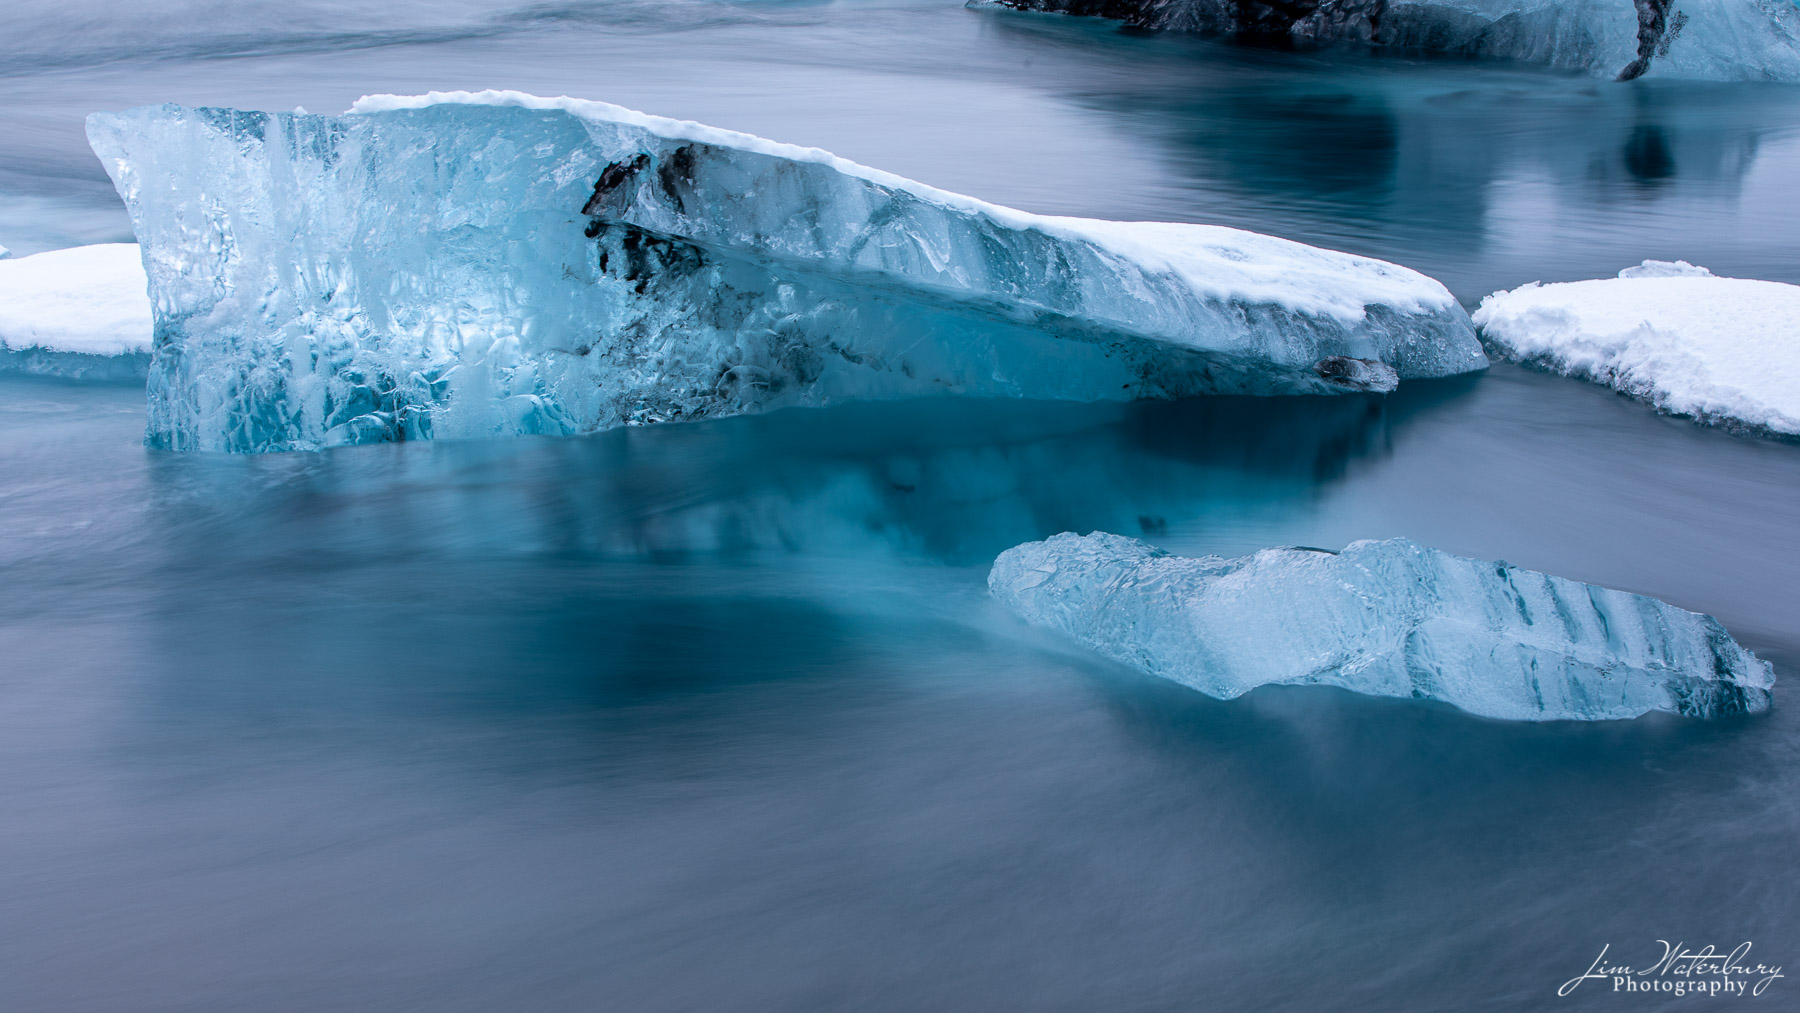 Ice sculpture reflected in the waters of the Jokulsarlon glacial lagoon, Iceland.